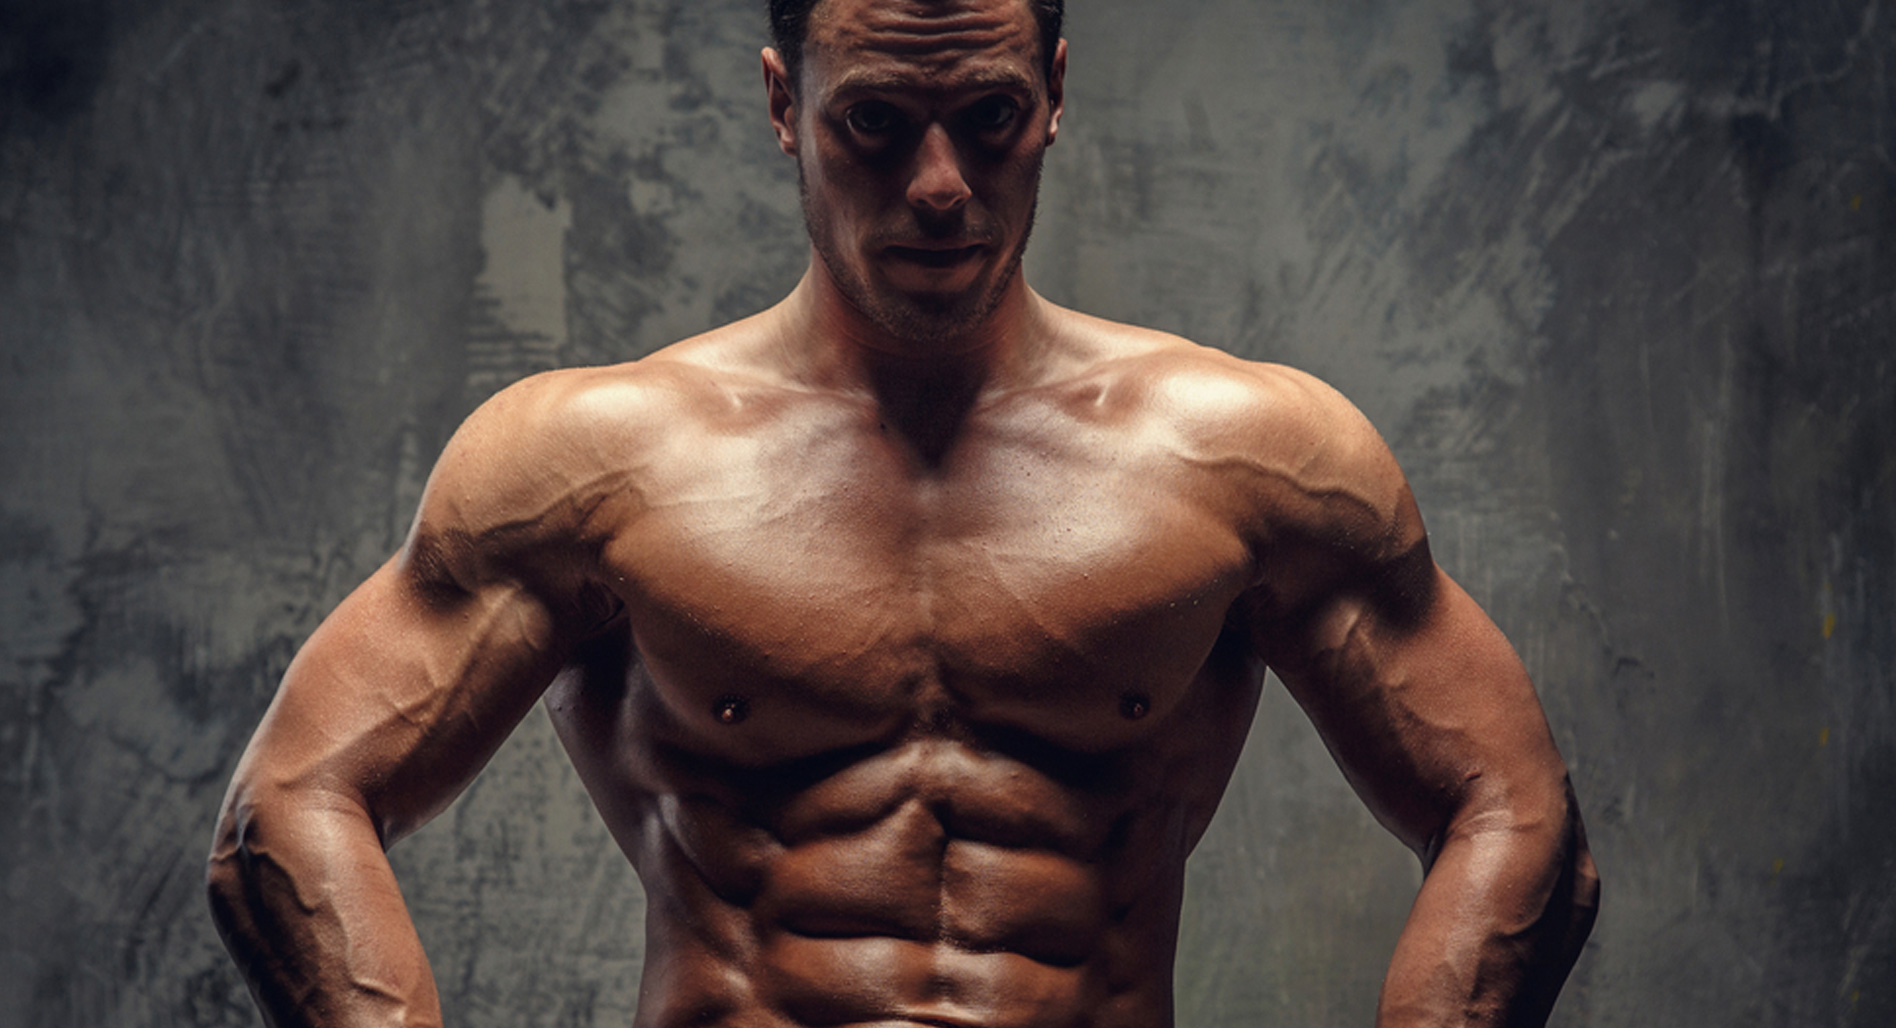 How to get big in 2016